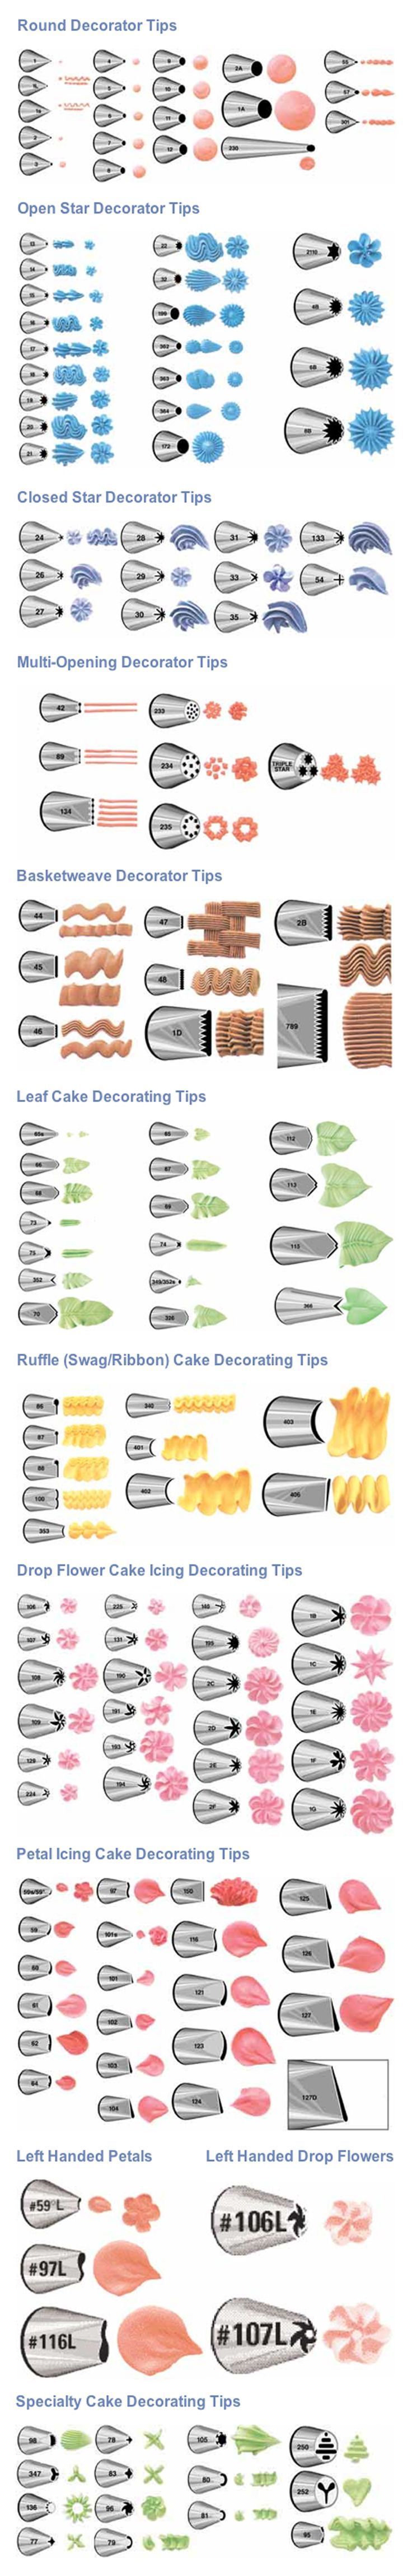 Can't get many more icing tips than this! Practice enough and you can decorate any cake or cupcake! (Baking Tools)